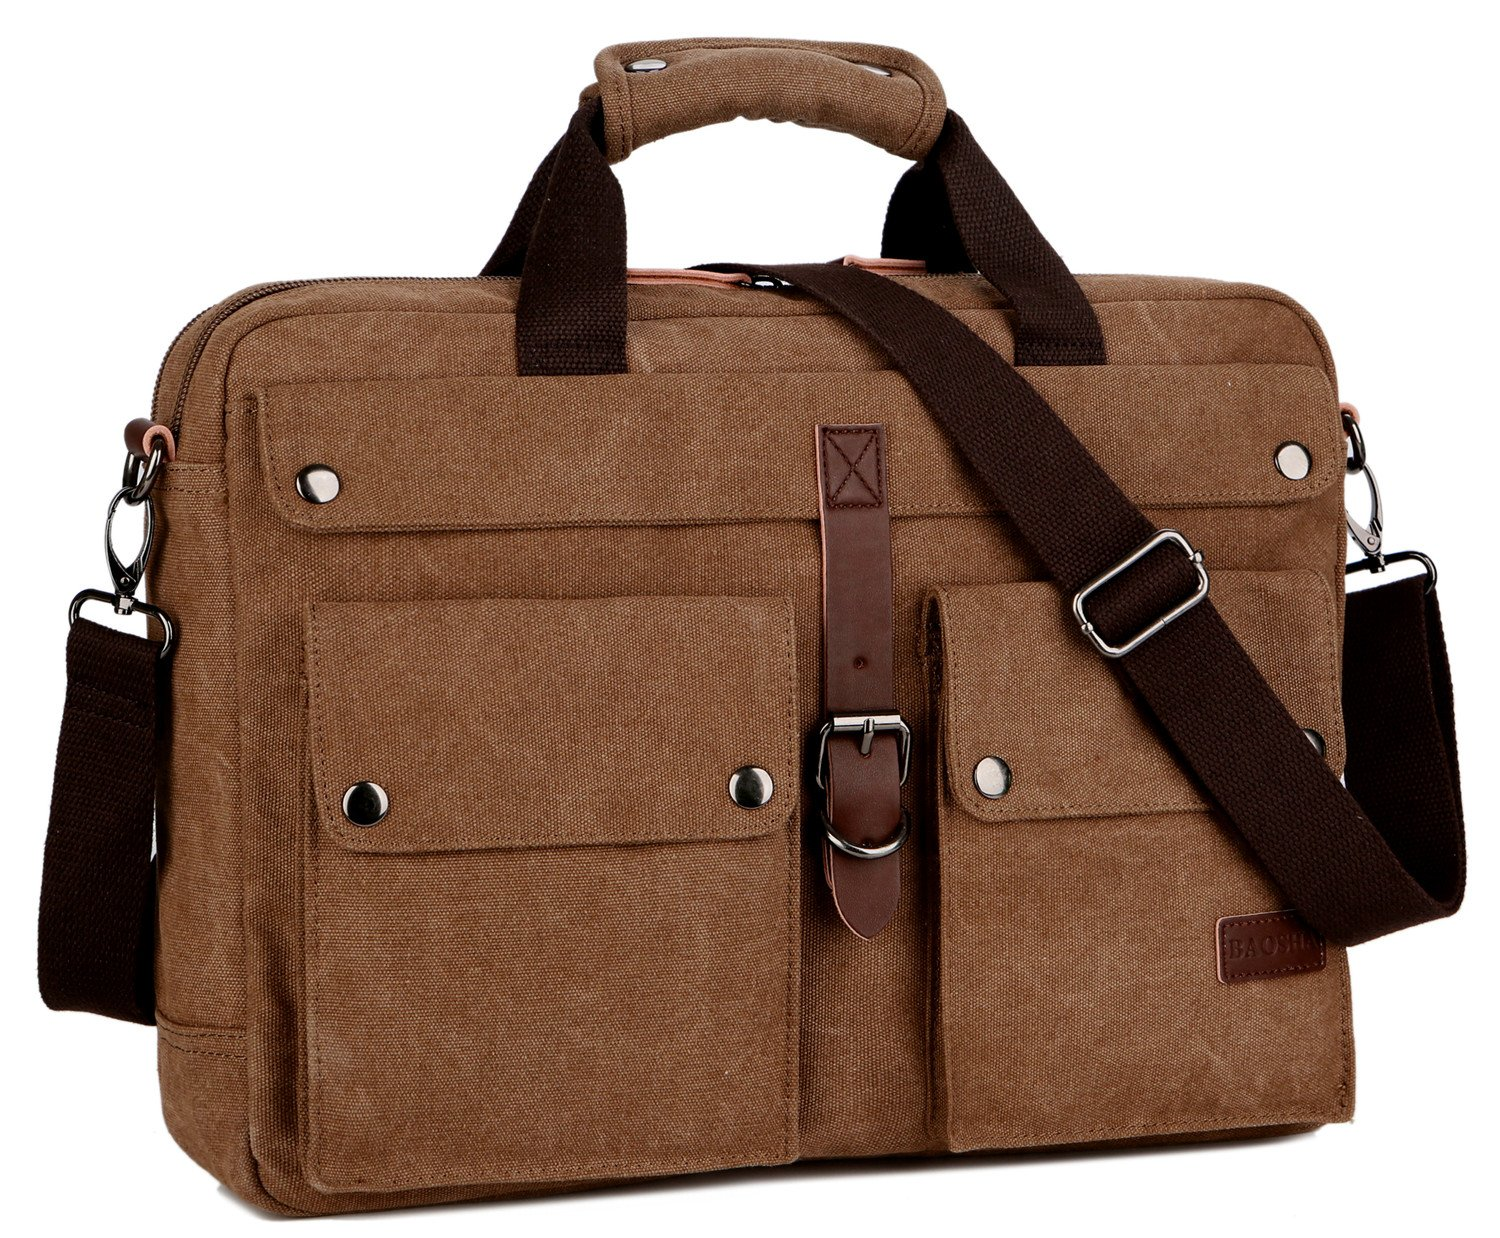 BAOSHA BC-07 17inch Canvas Laptop Computer Bag Messenger Bag Multicompartment Briefcase (Coffee)